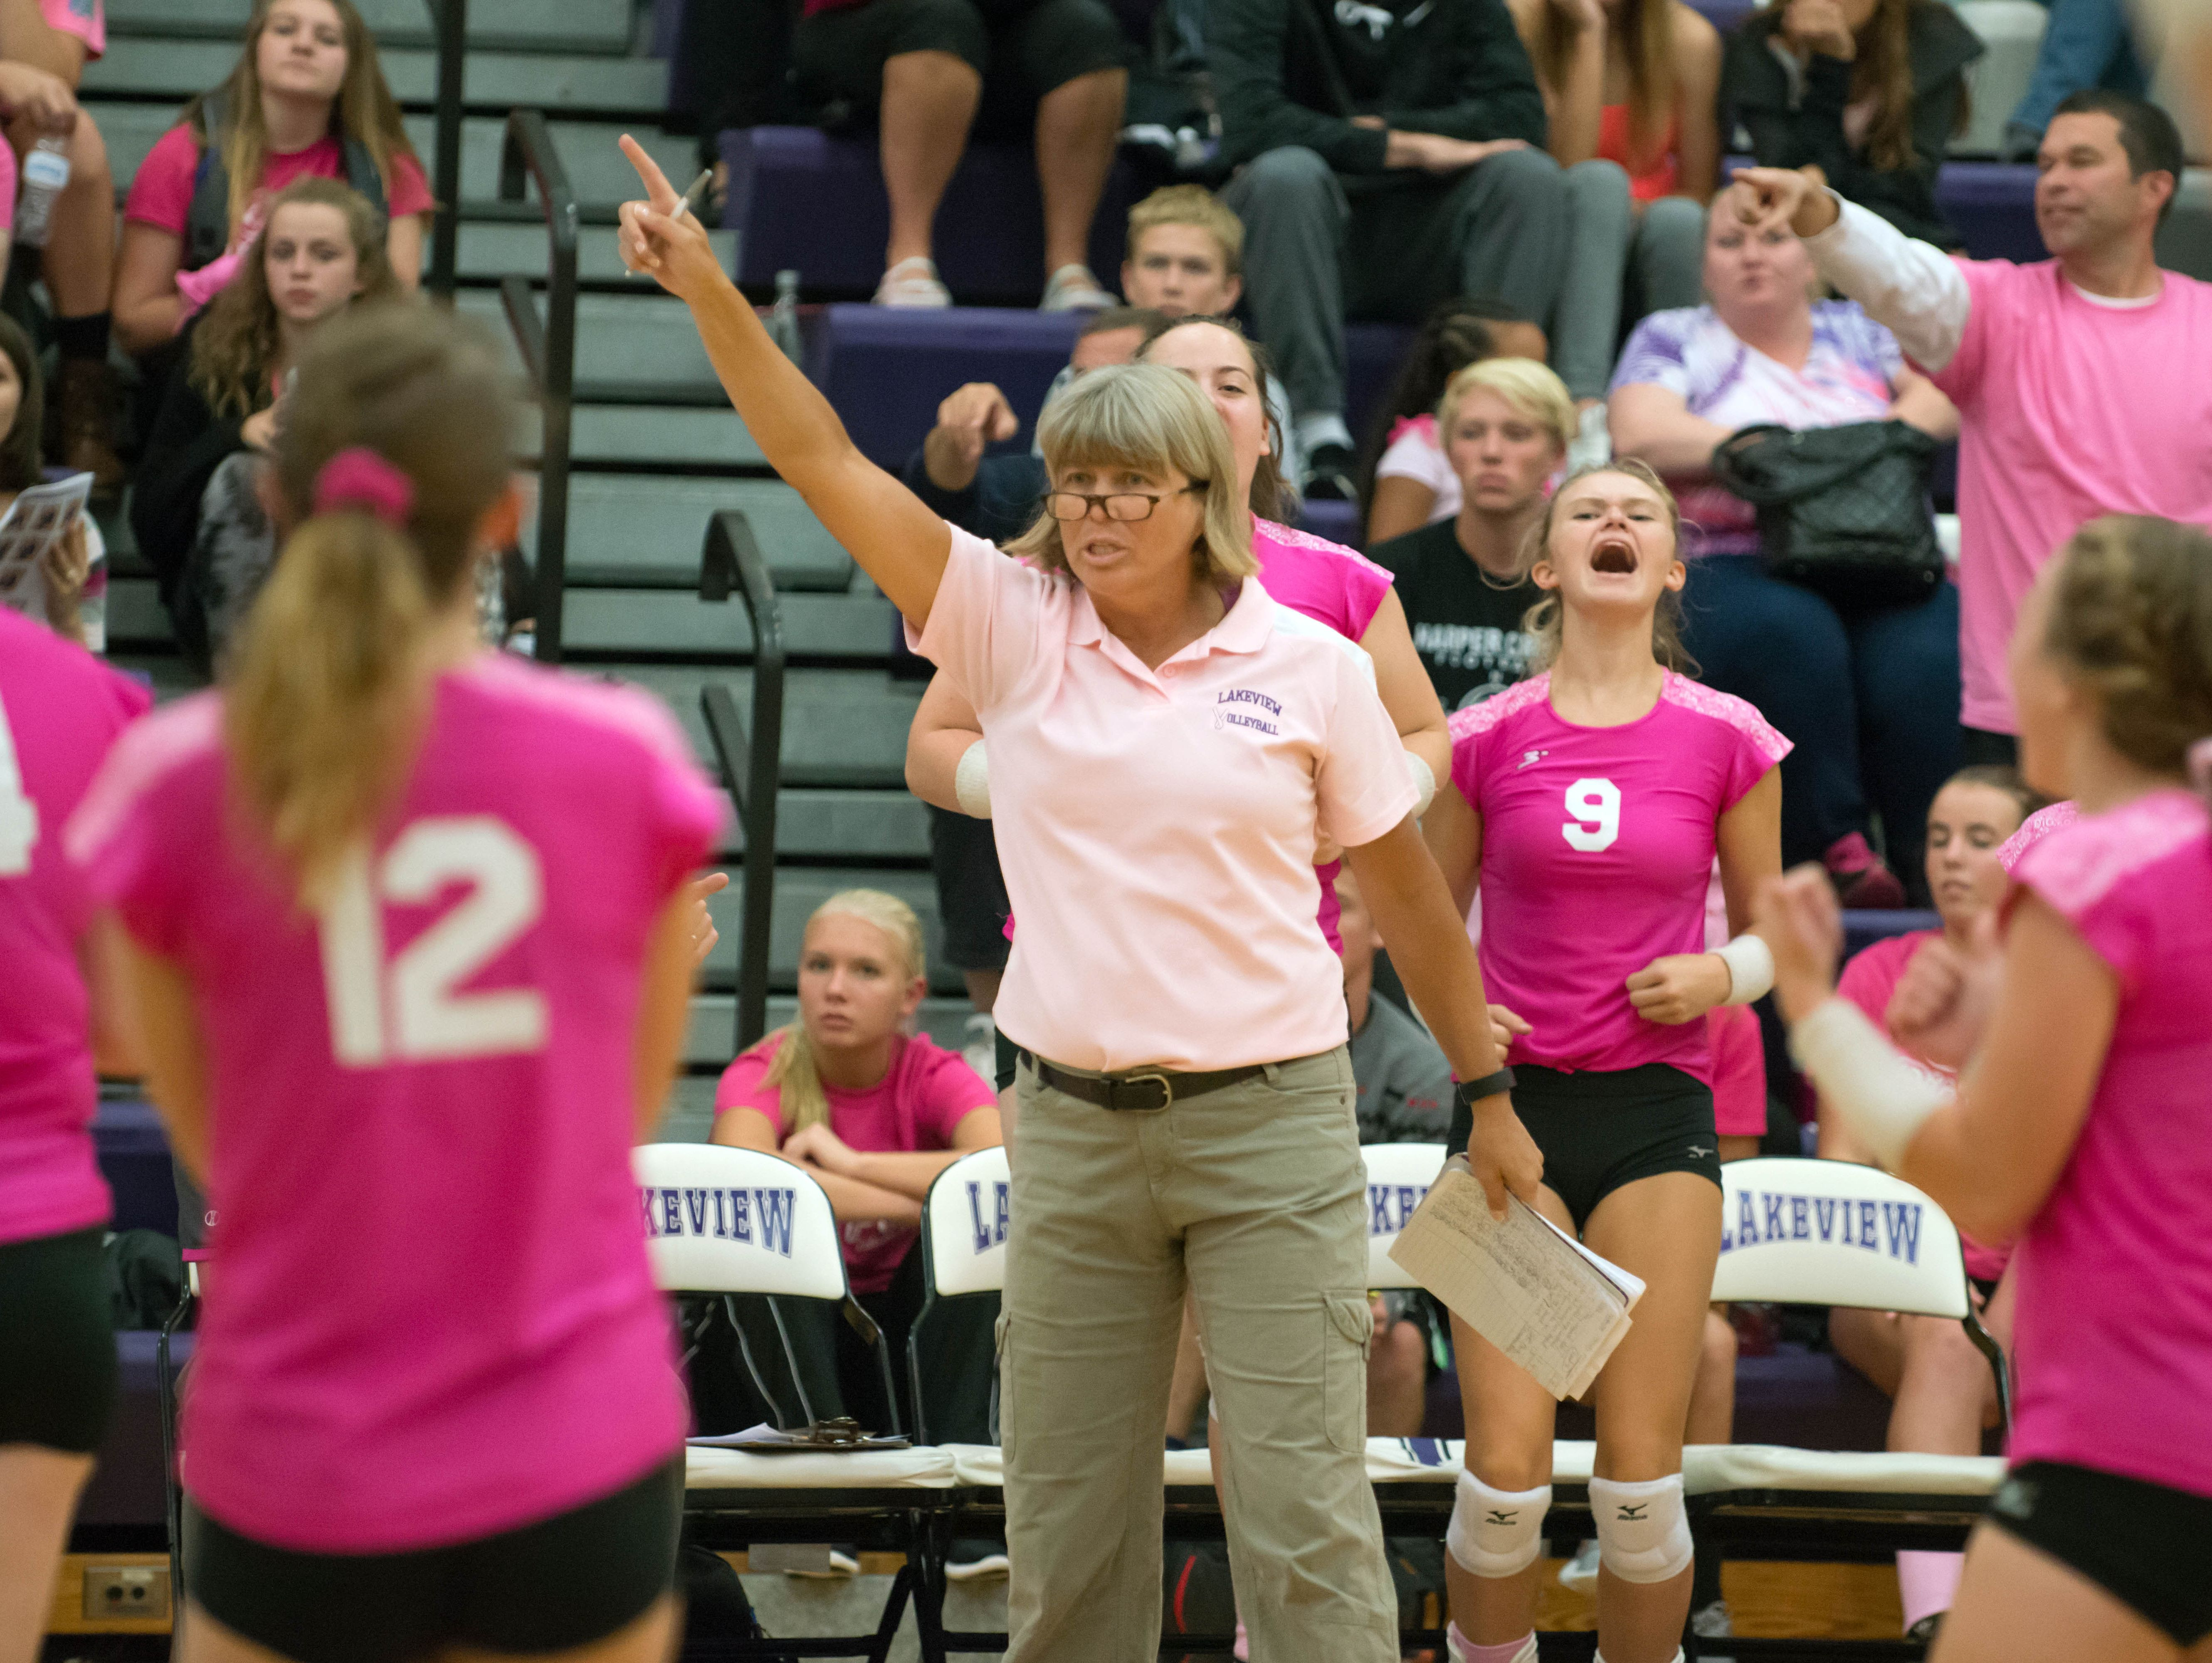 Lakeview head coach Heather Sawyer signals to her players as they win the first match against Mattawan Wednesday night.